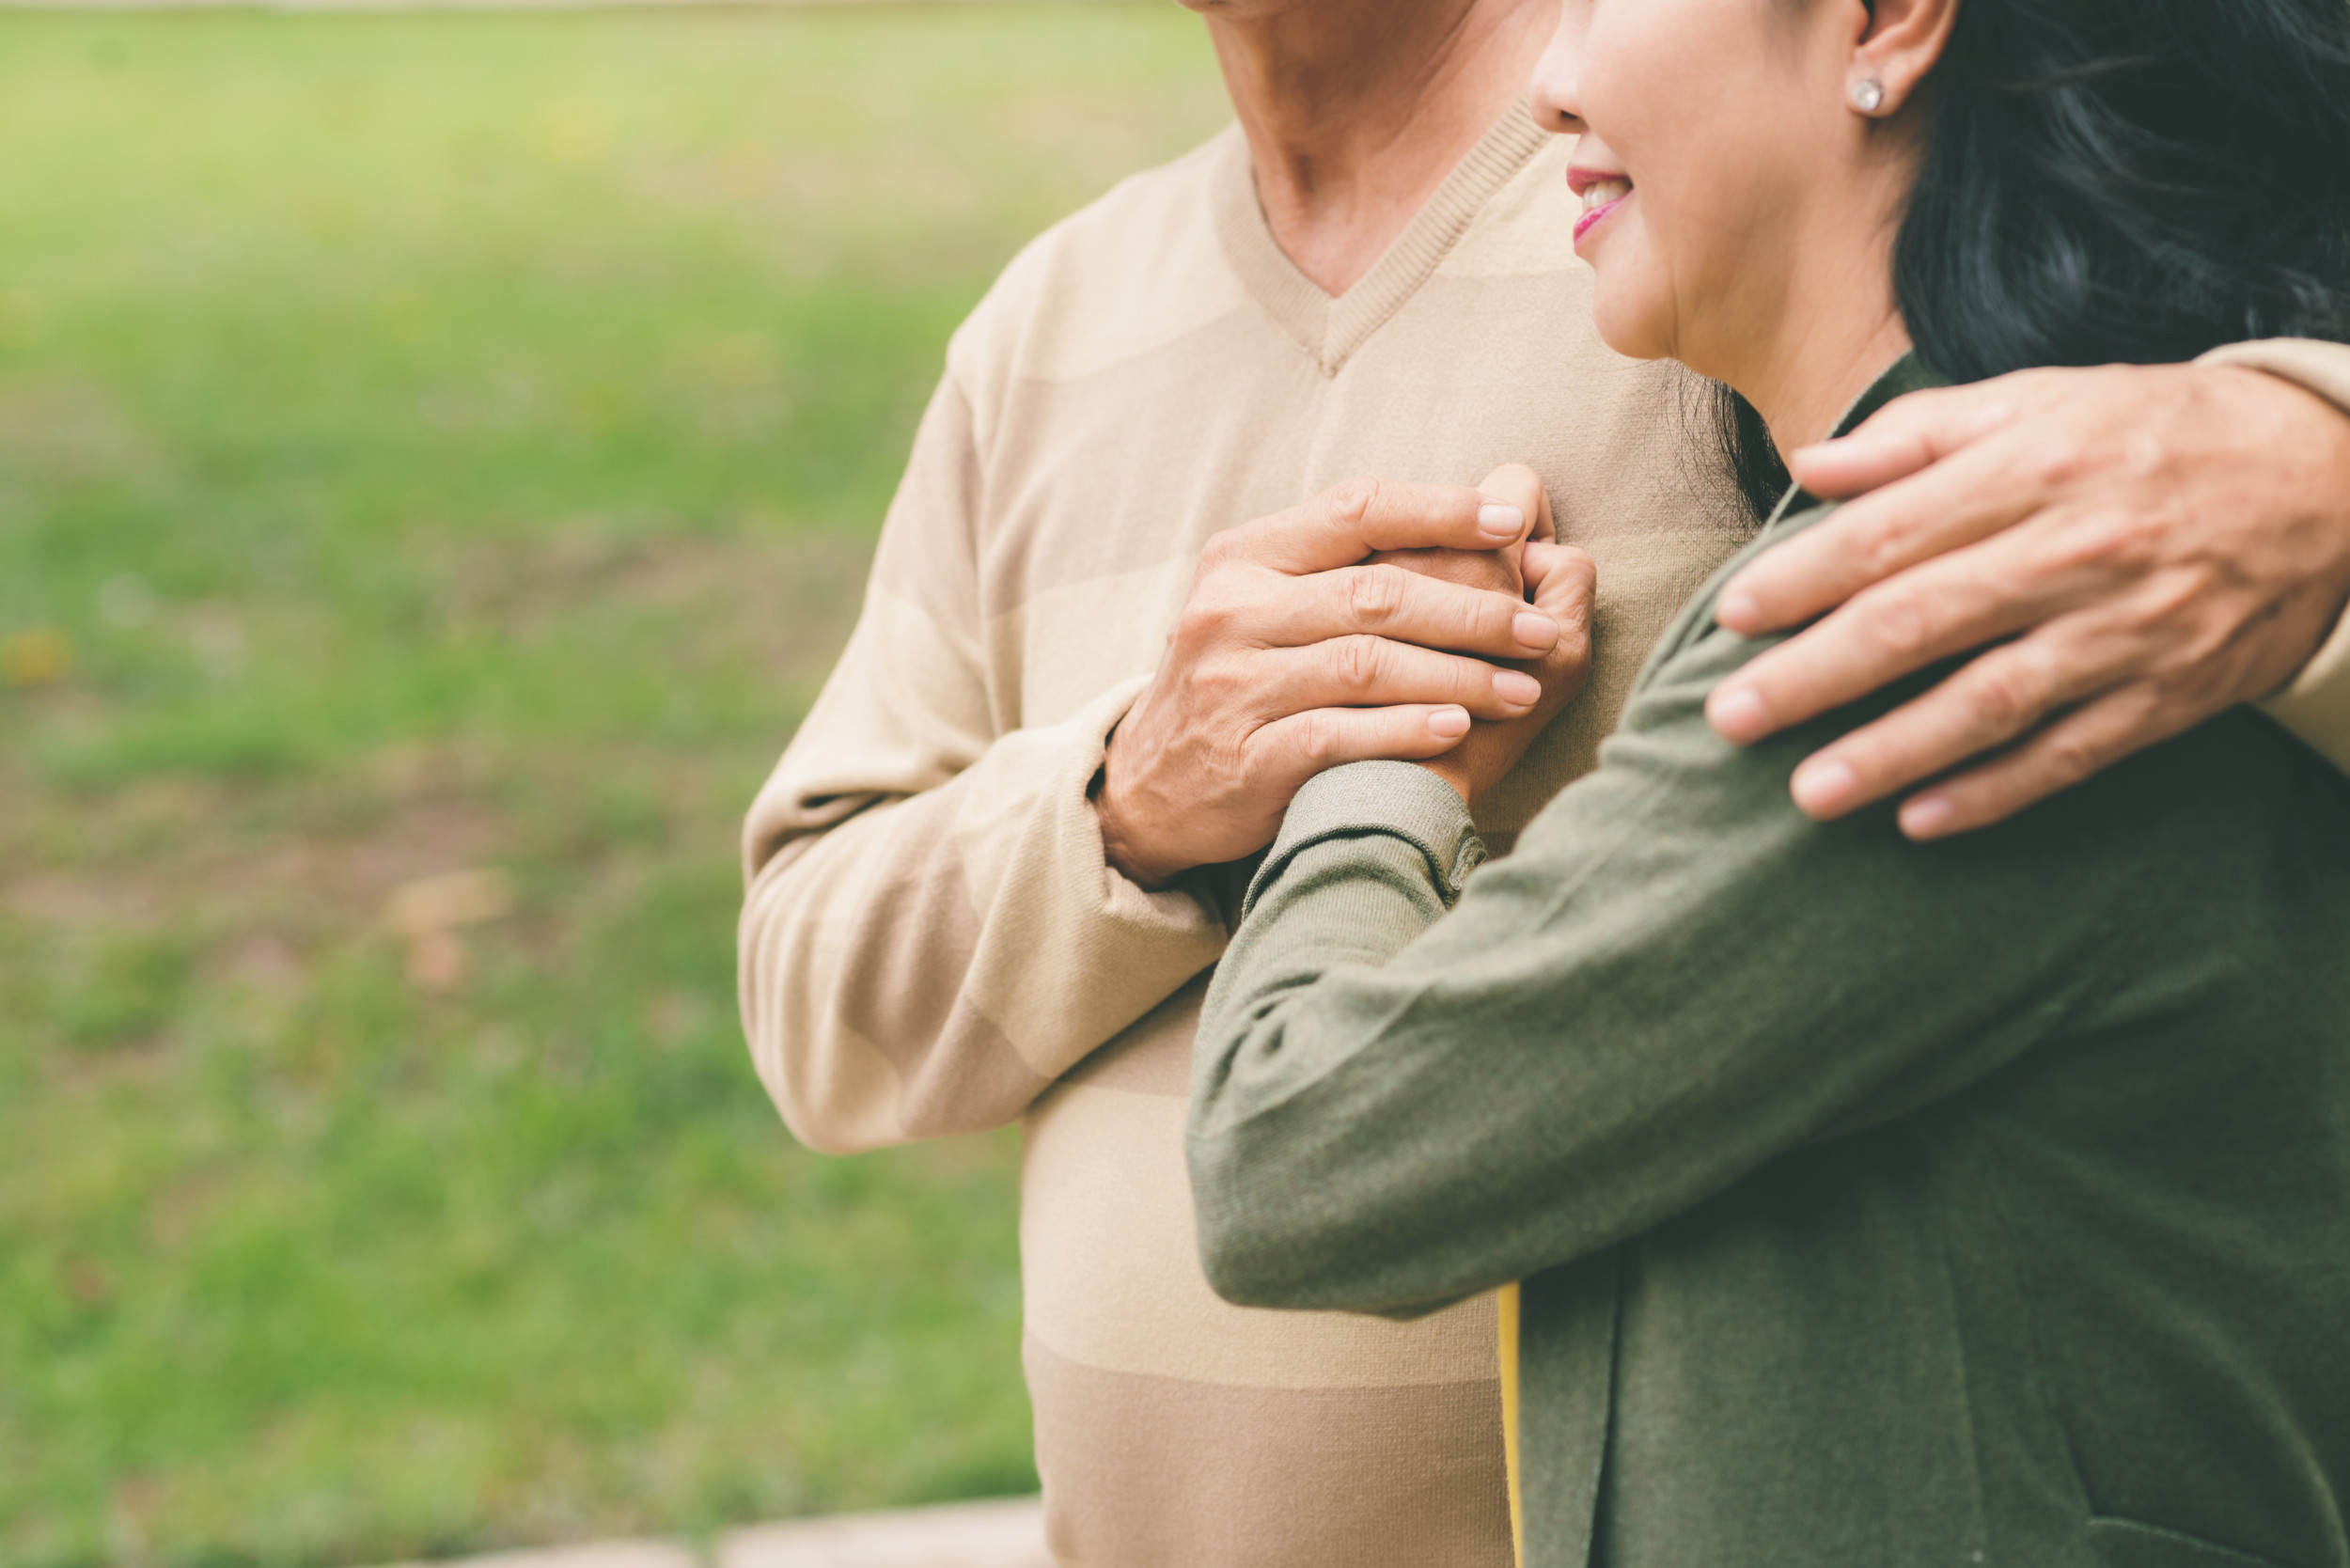 Tips for taking over the finances of an elderly loved one